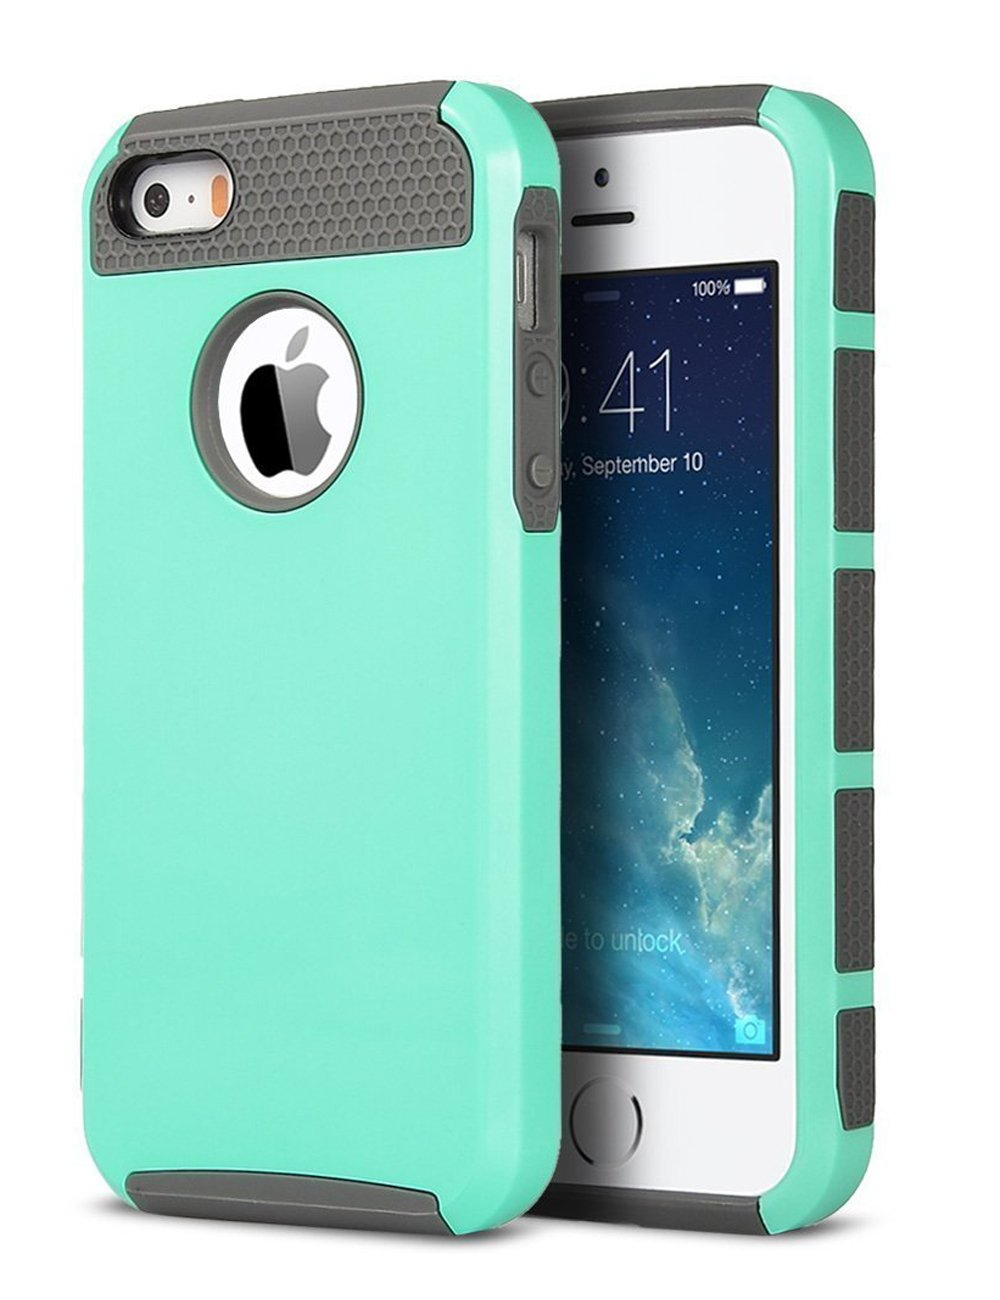 iphone cases 5s ulak iphone 5s iphone 5 iphone se slim 3560